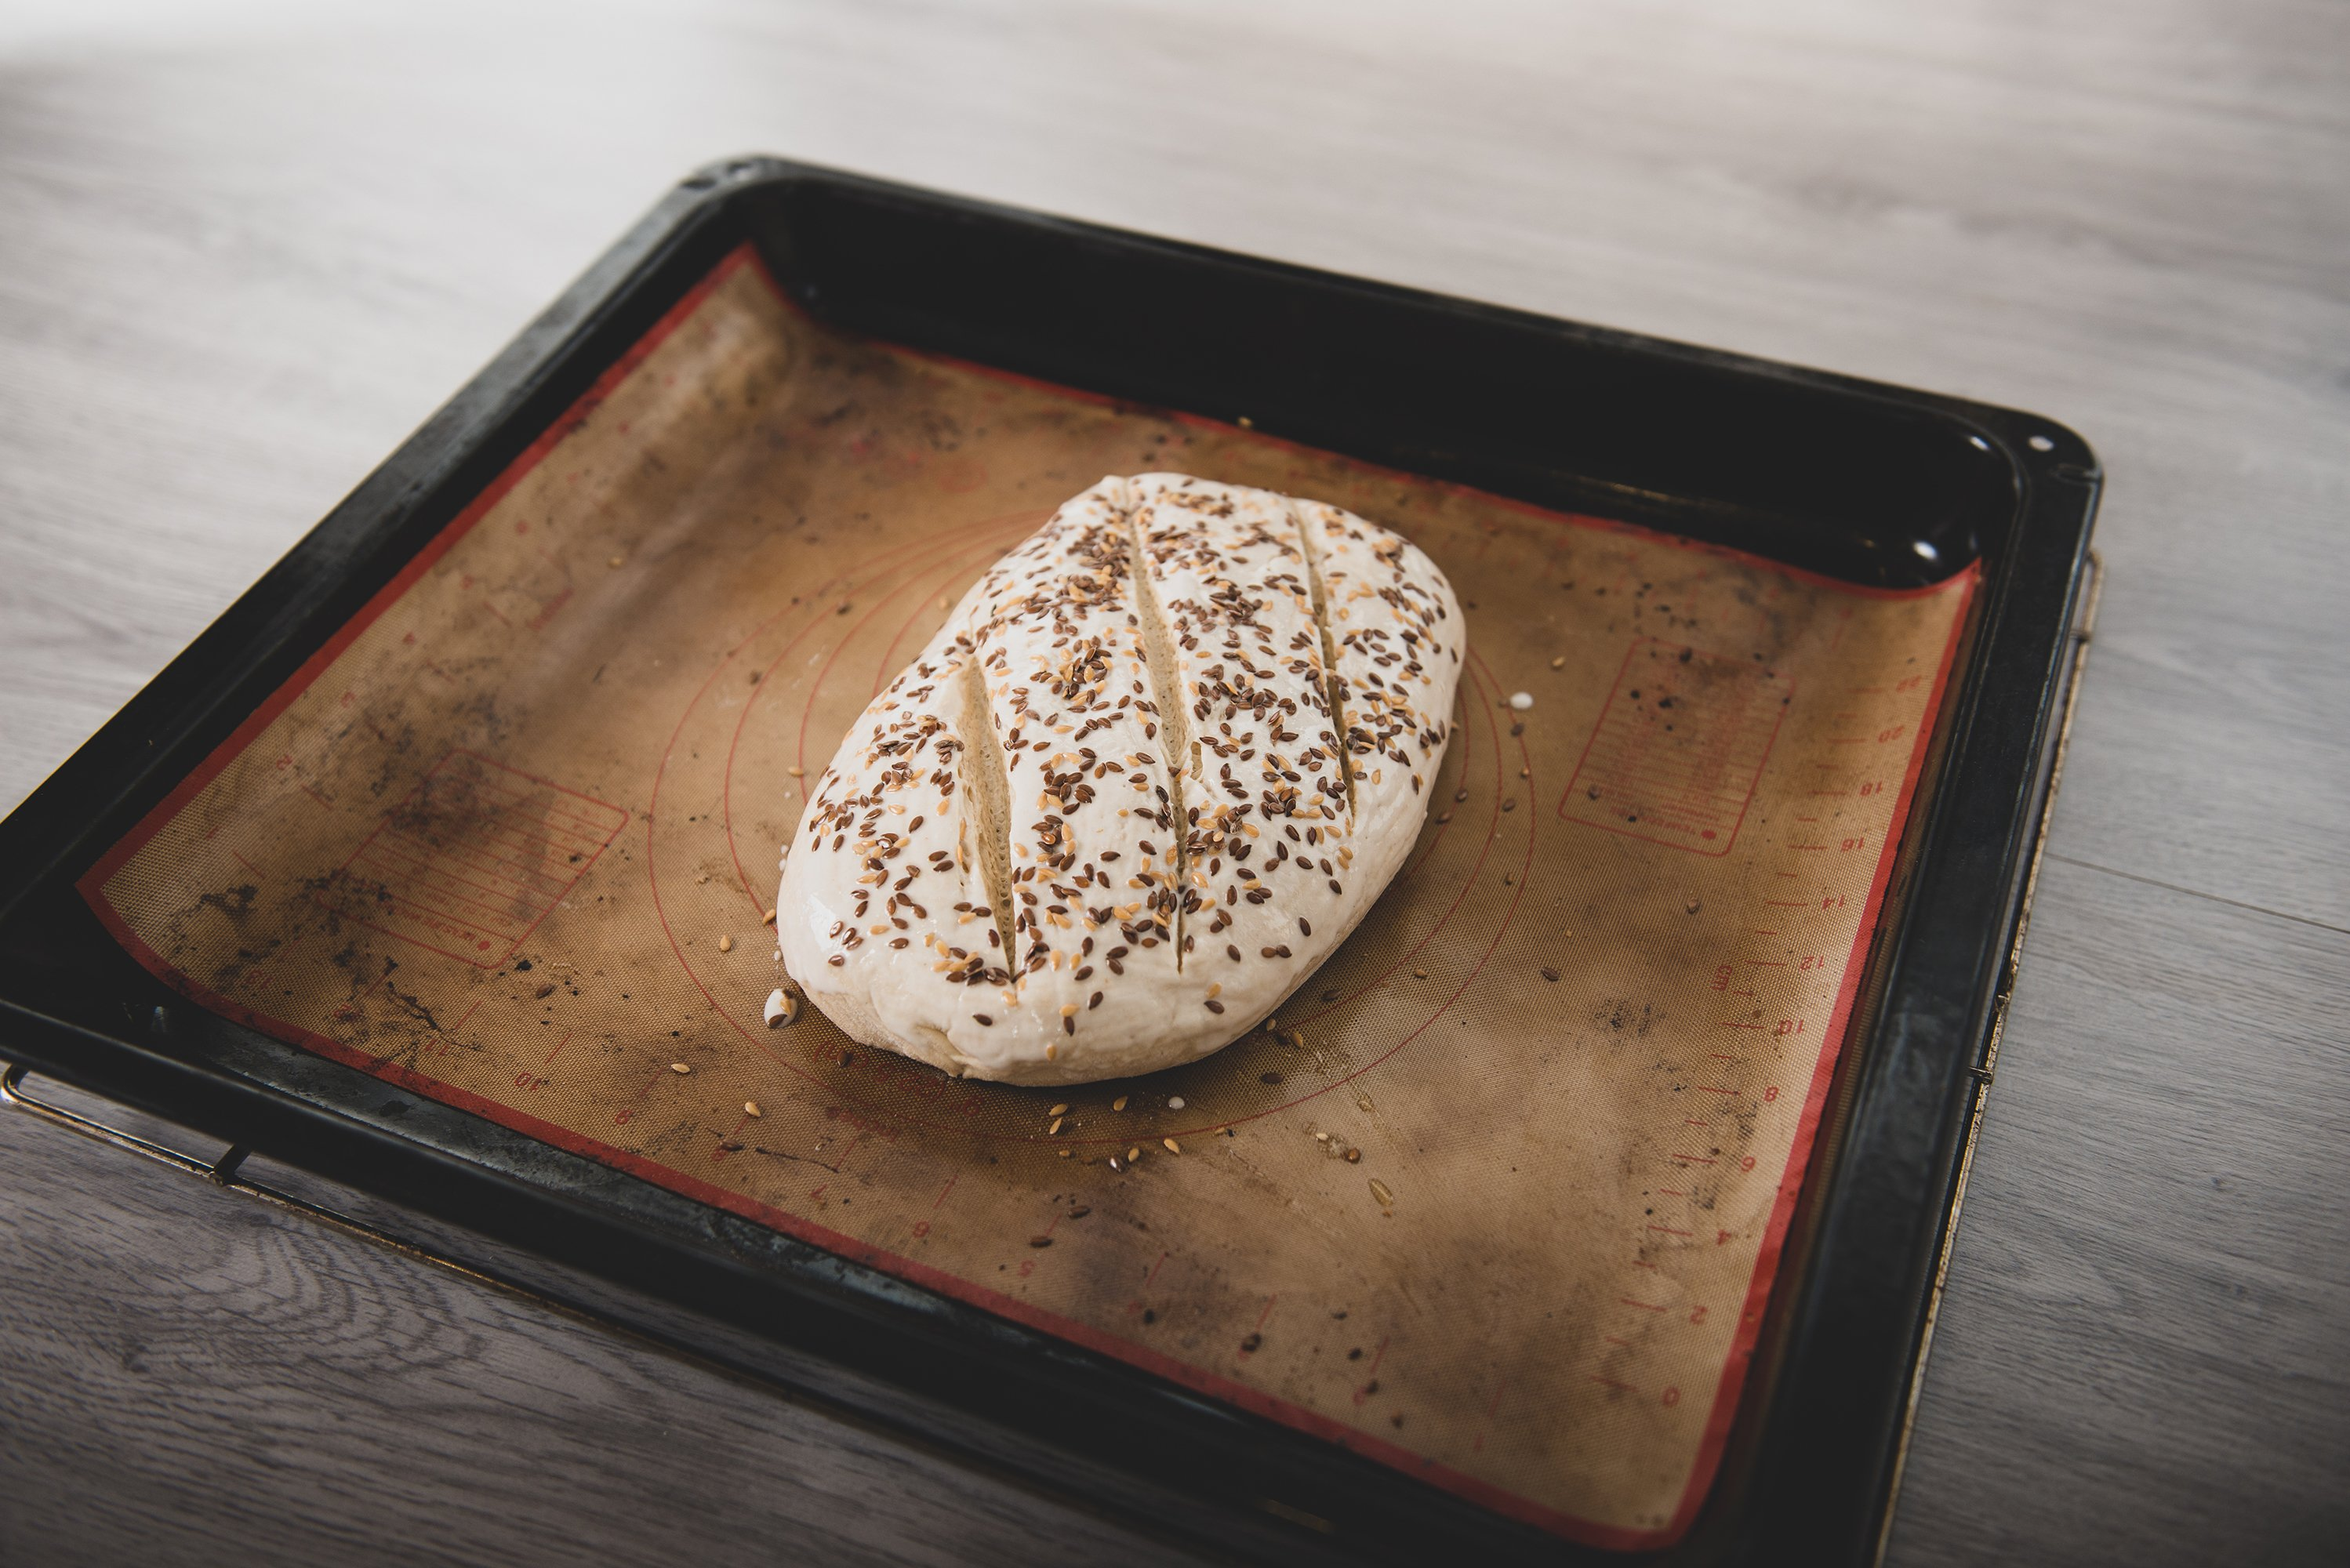 preparation of dough for craft bread example image 1